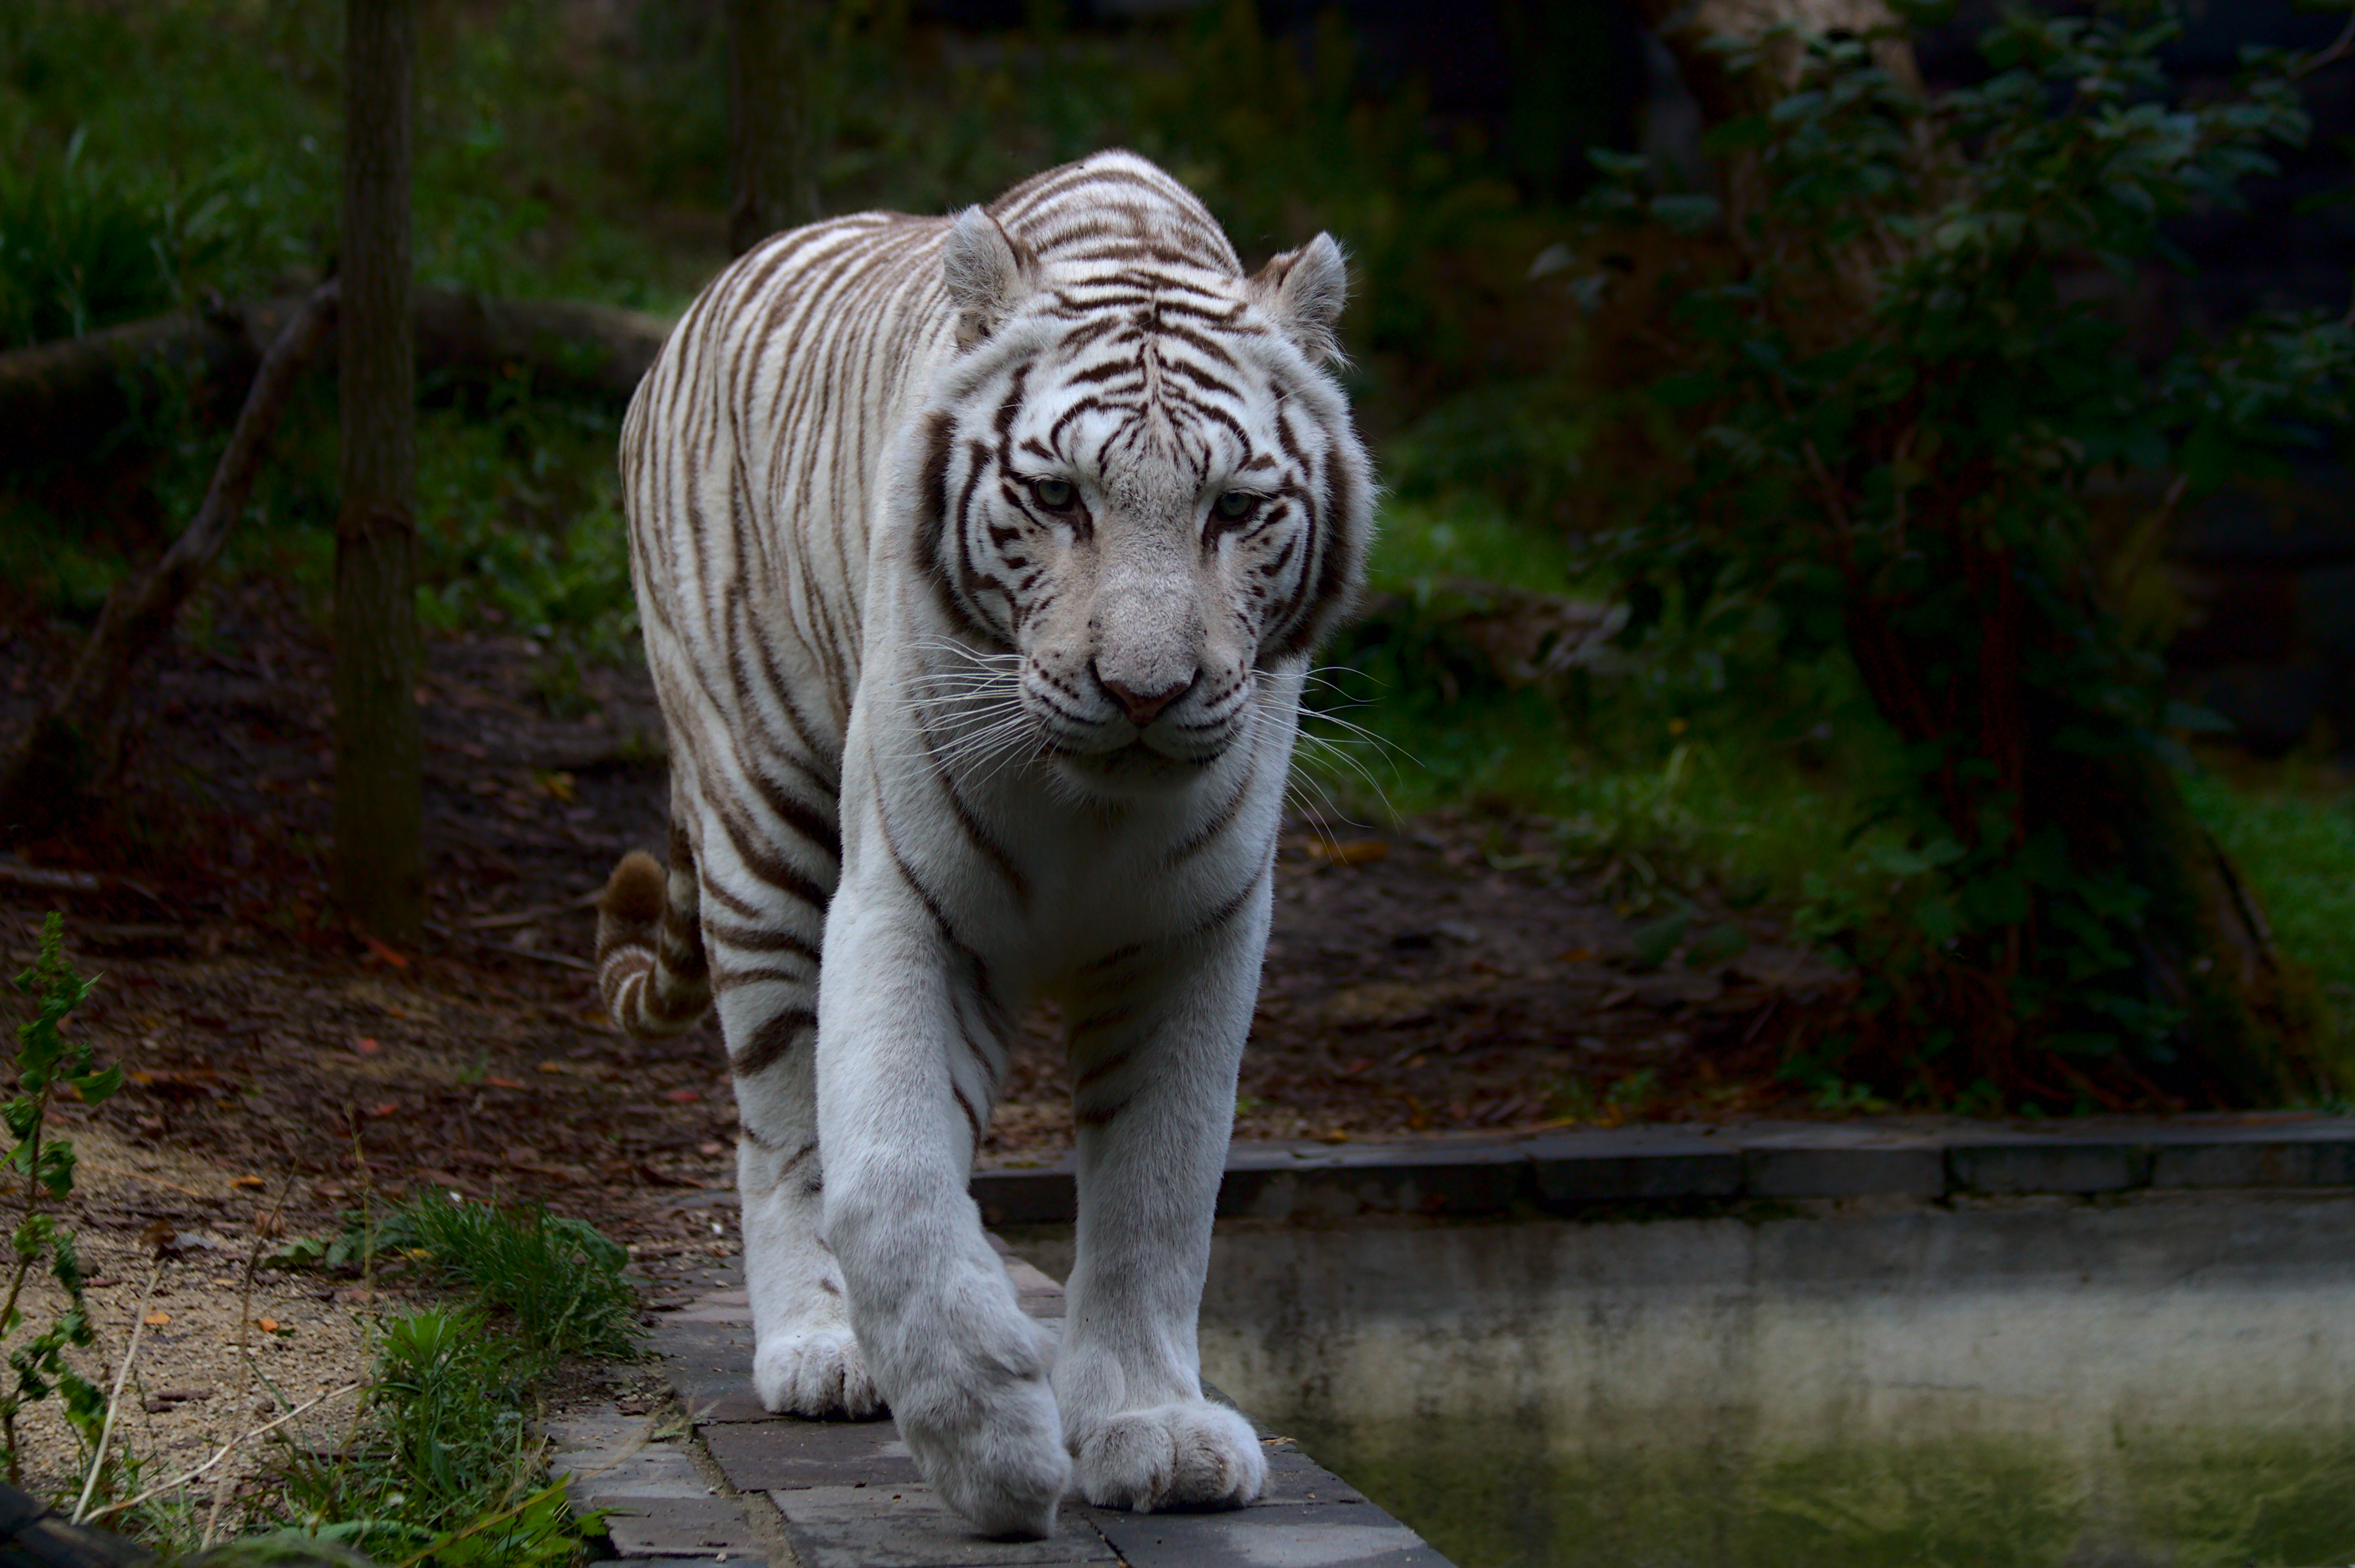 117792 download wallpaper Animals, White Tiger, Tiger, Predator, Big Cat screensavers and pictures for free